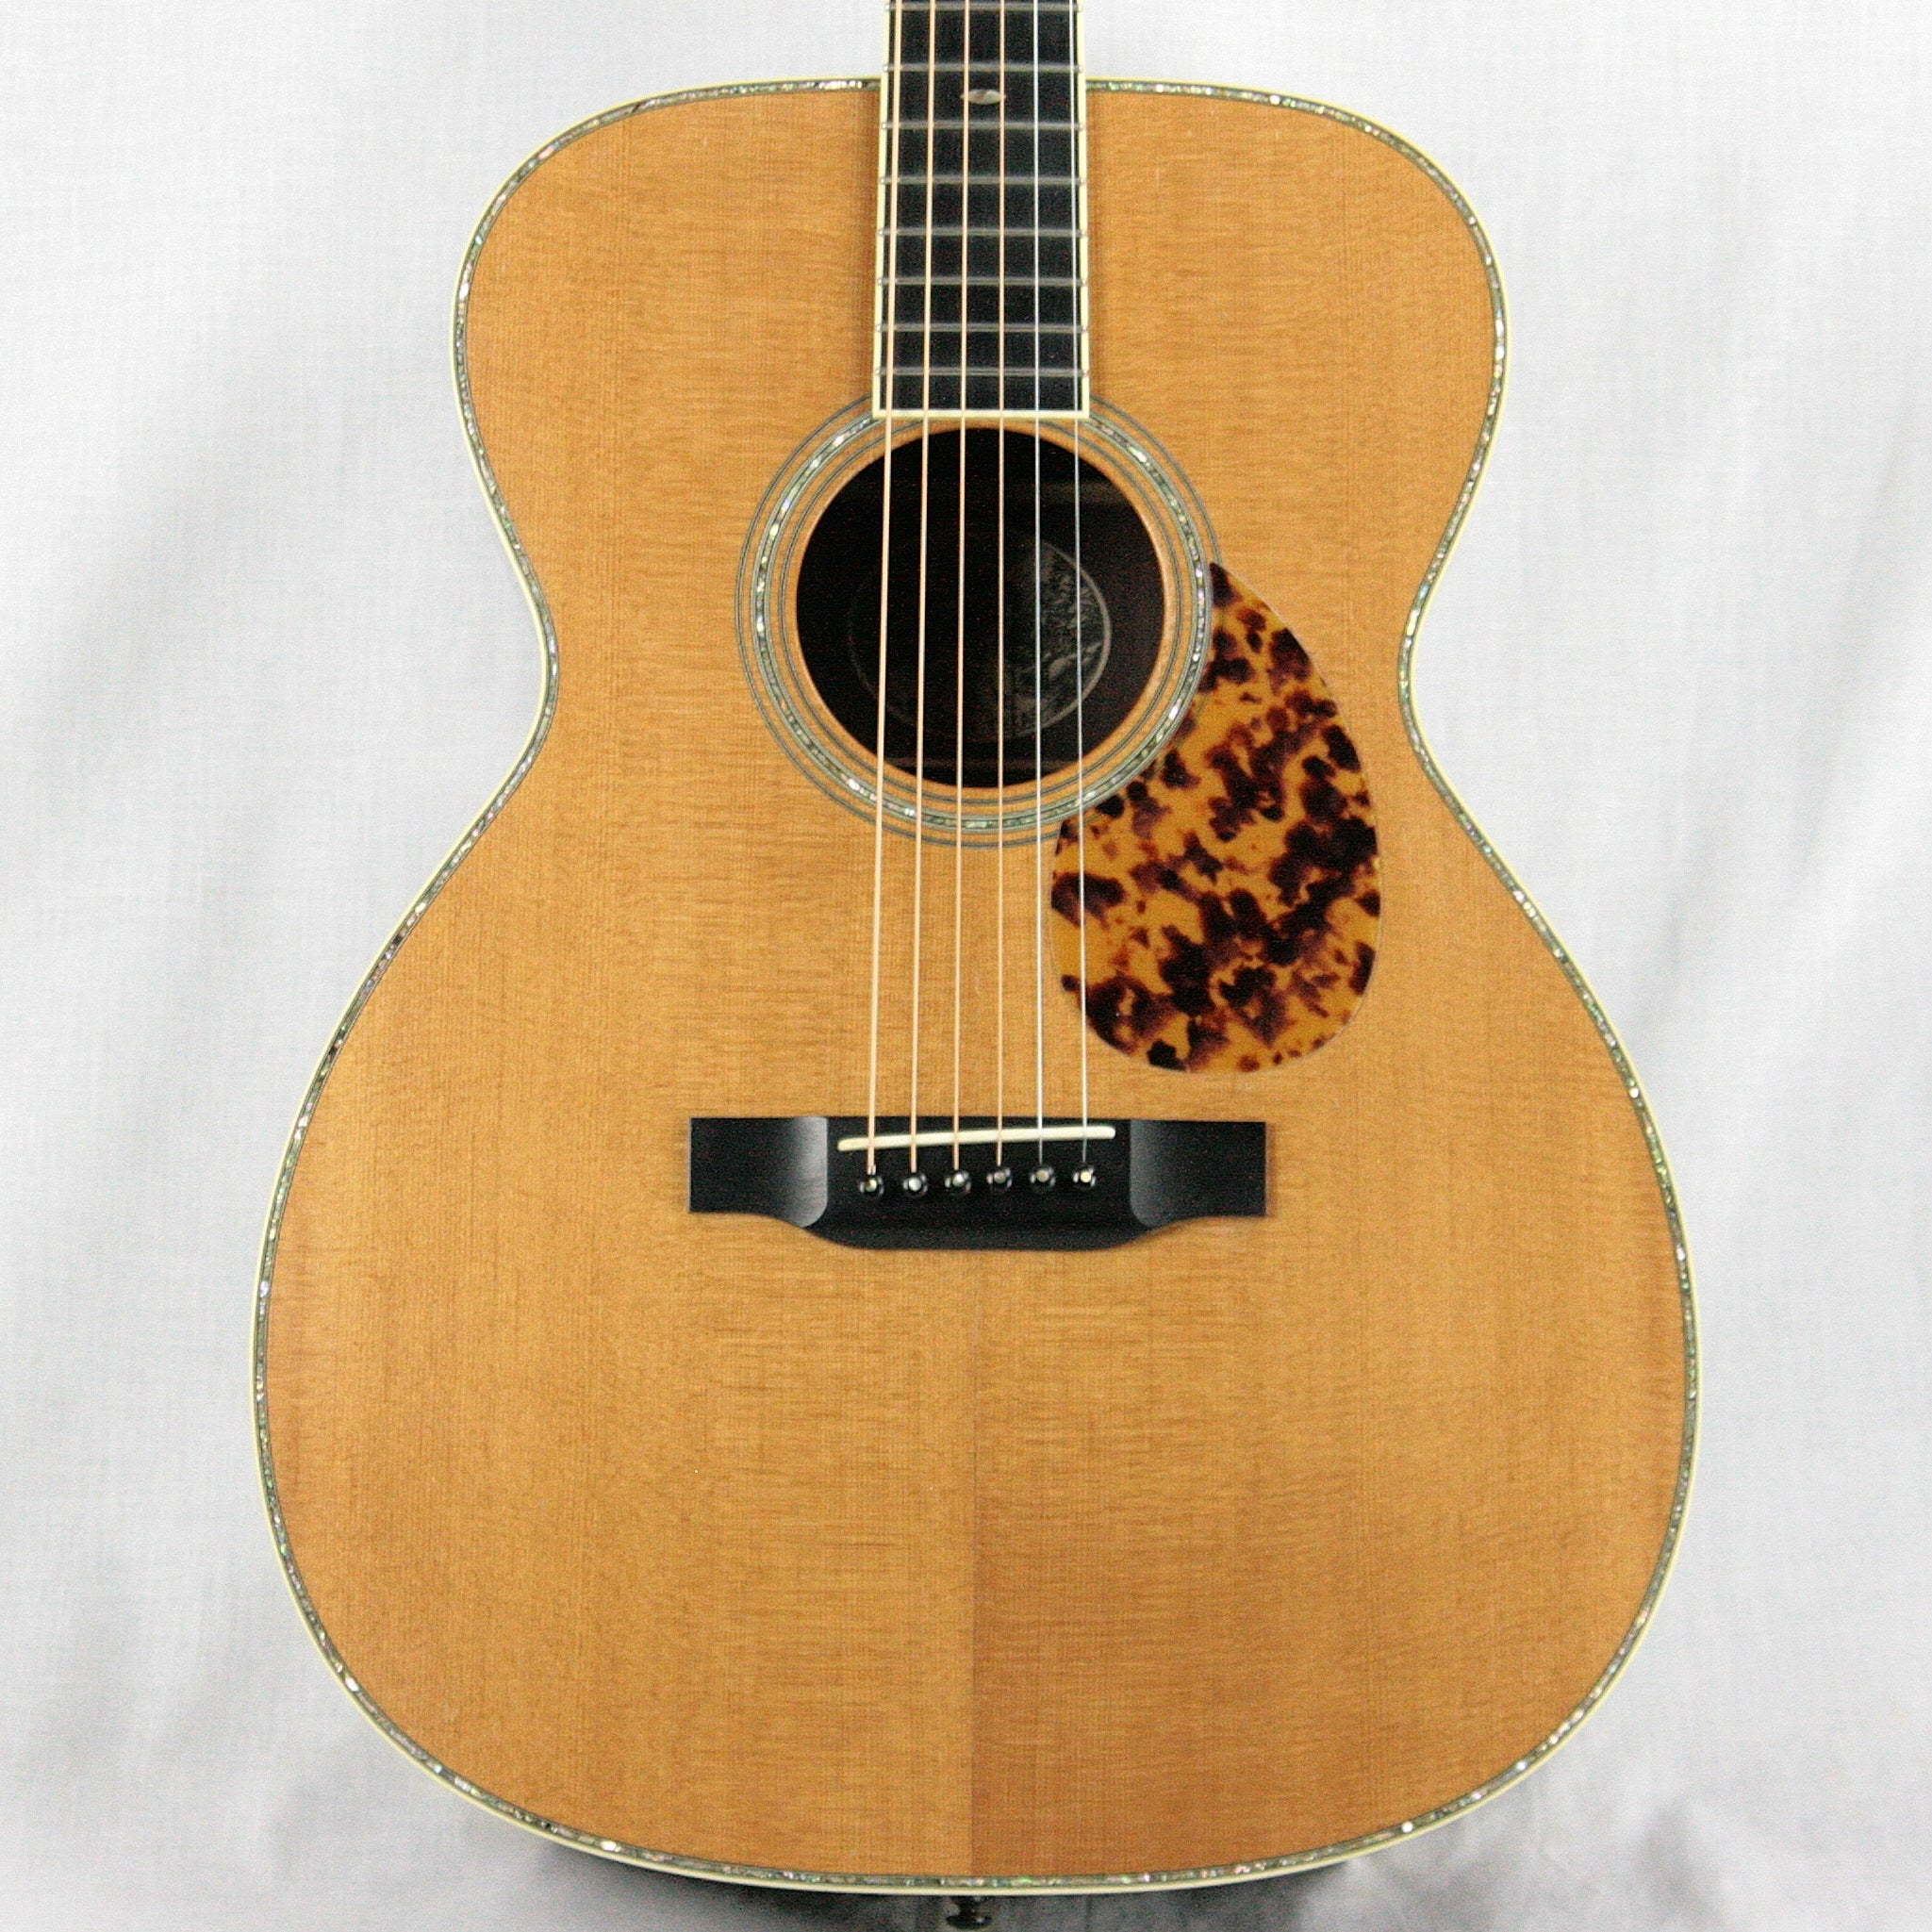 1997 Collings OM41 Spruce Top & Rosewood Back/Sides OM-41 Signed by Bill